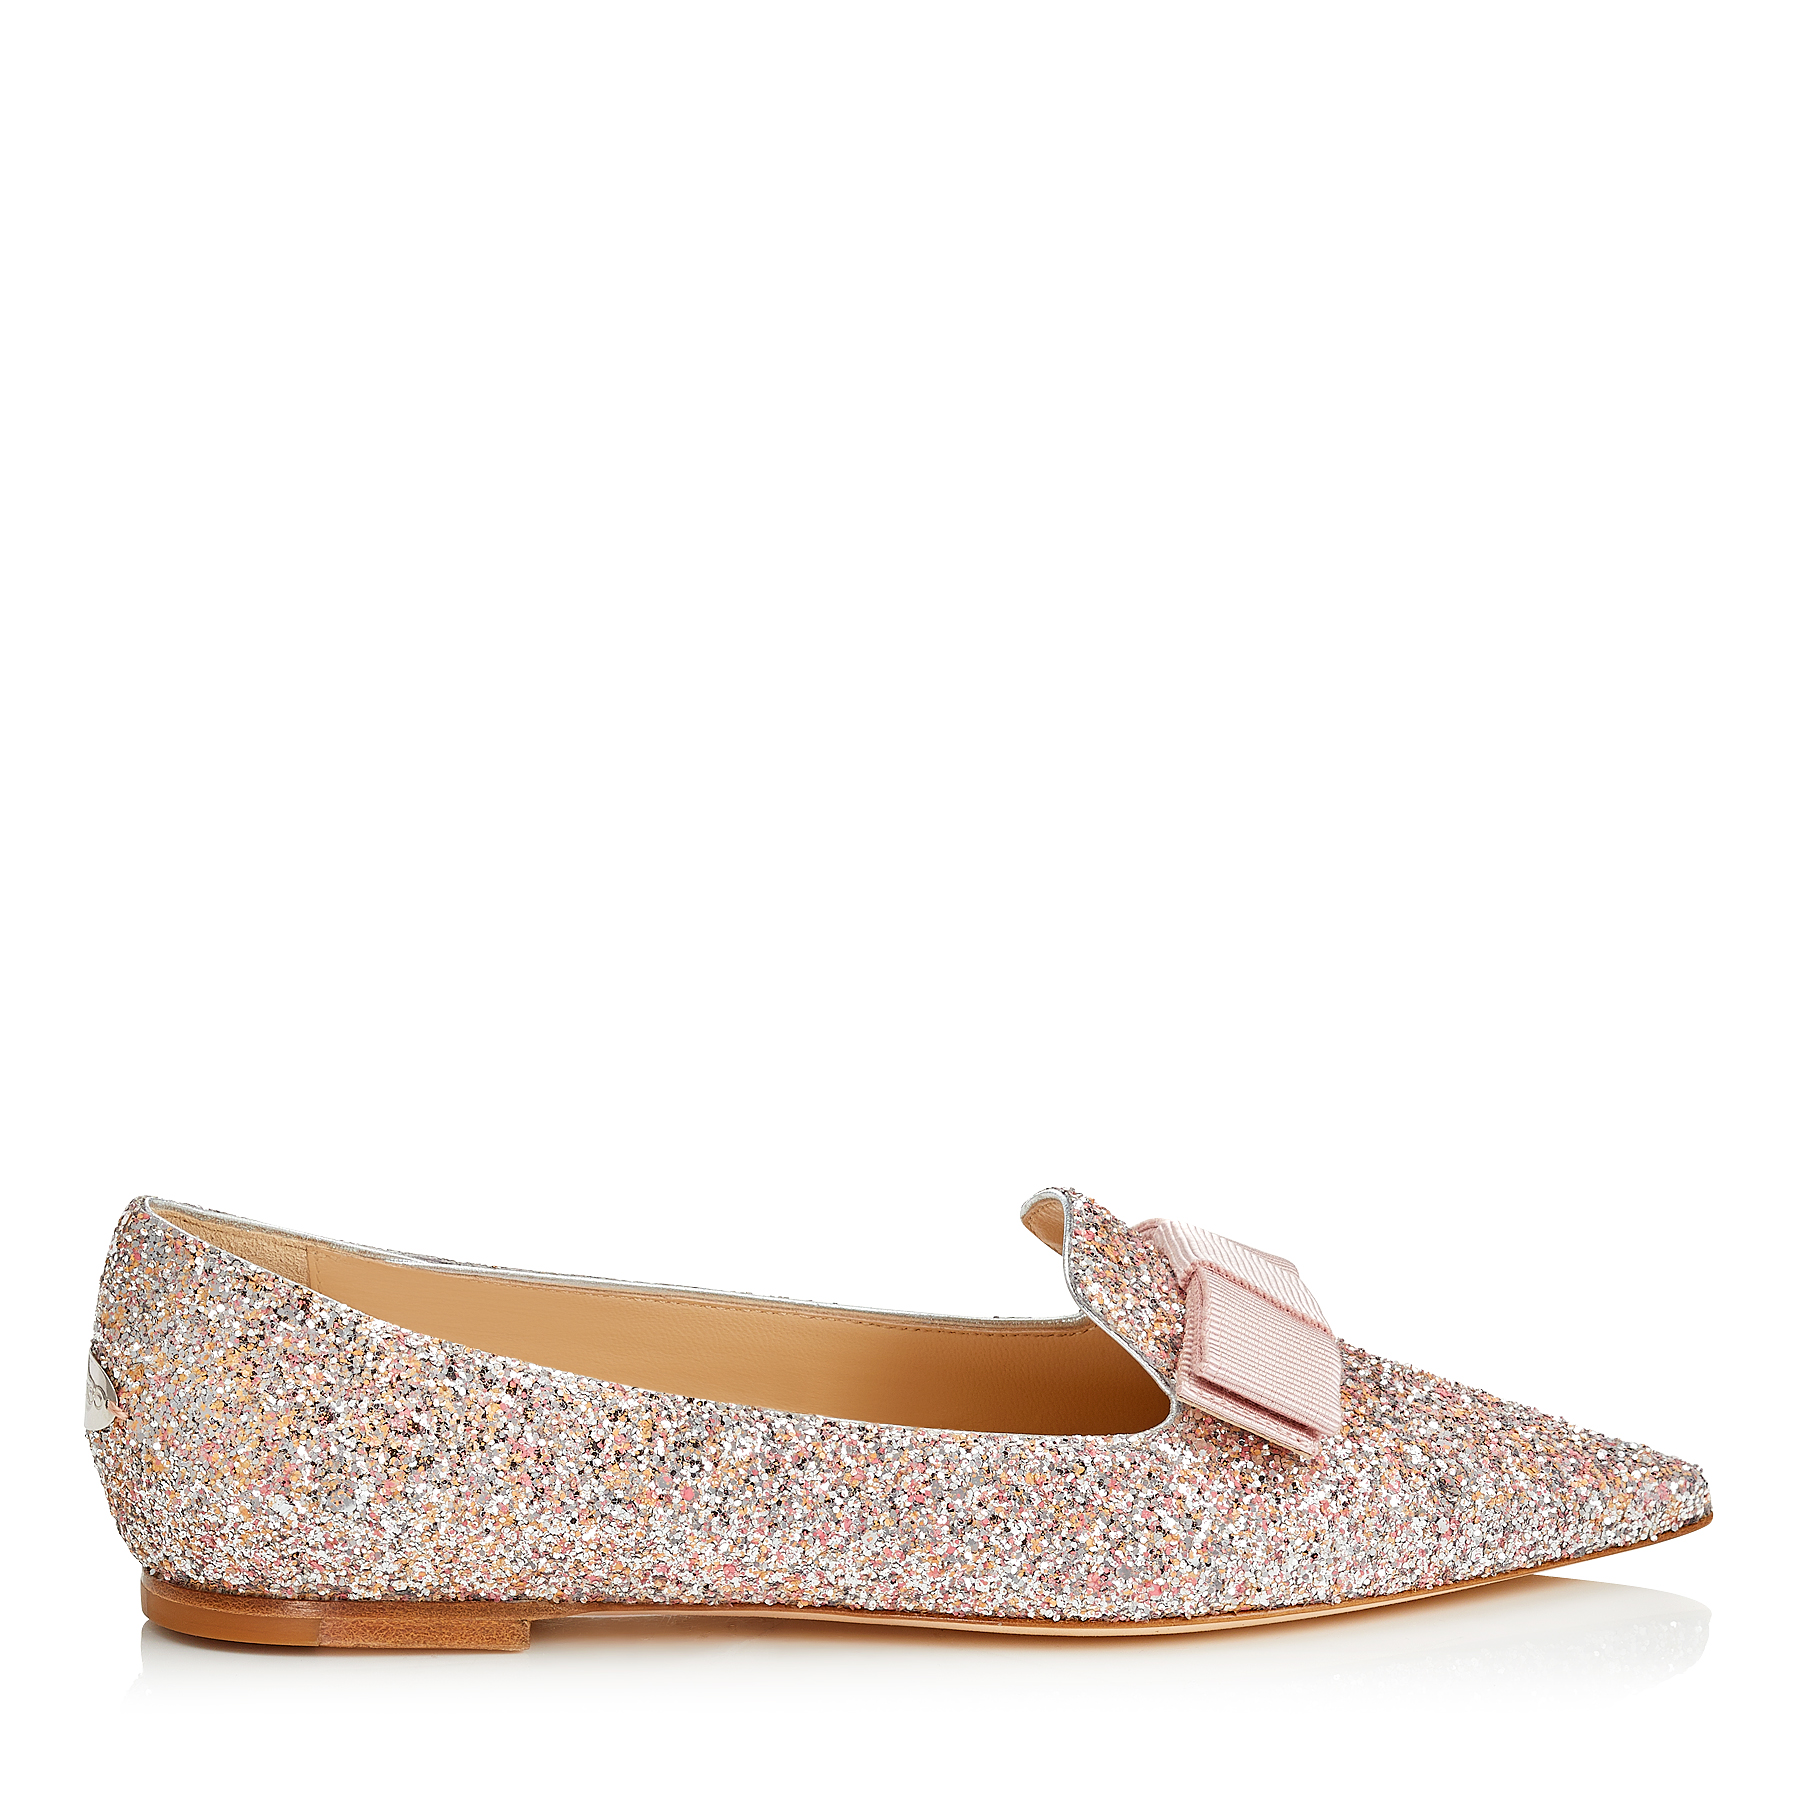 GALA Viola Mix Speckled Glitter Pointy Toe Flats by Jimmy Choo